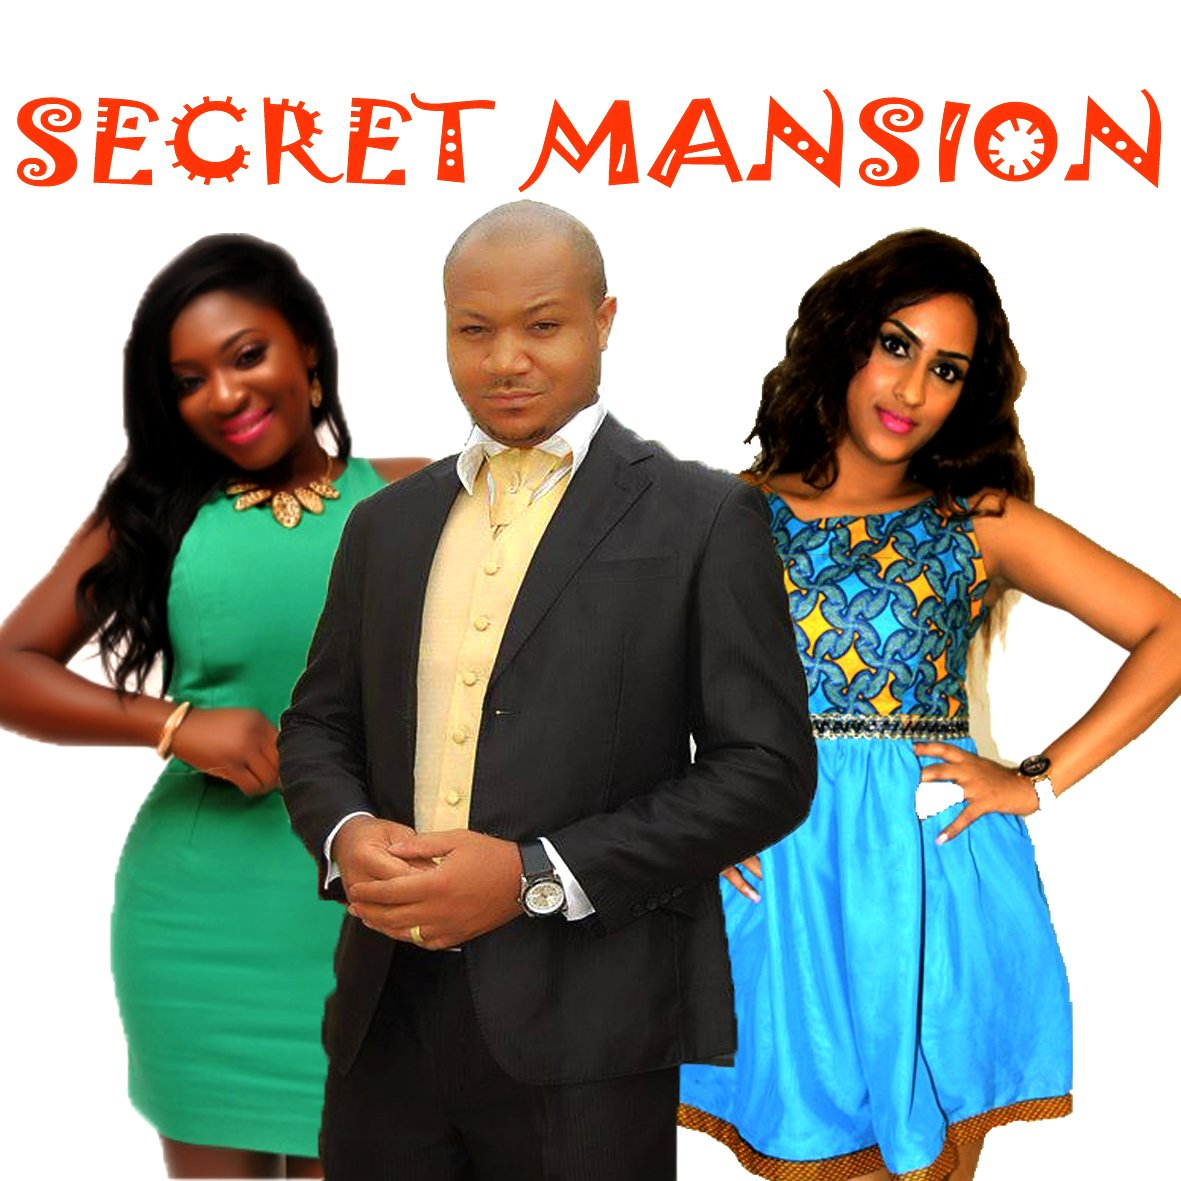 """Once you share a secret, it's no longer a secret. THE """"SECRET MANSION"""" is a suspense filled movie you will surely enjoy. Get it here http://ow.ly/HrWZ30nA4AH on #NerveFlo #MidweekMovies pic.twitter.com/UXsFMtuFBl"""